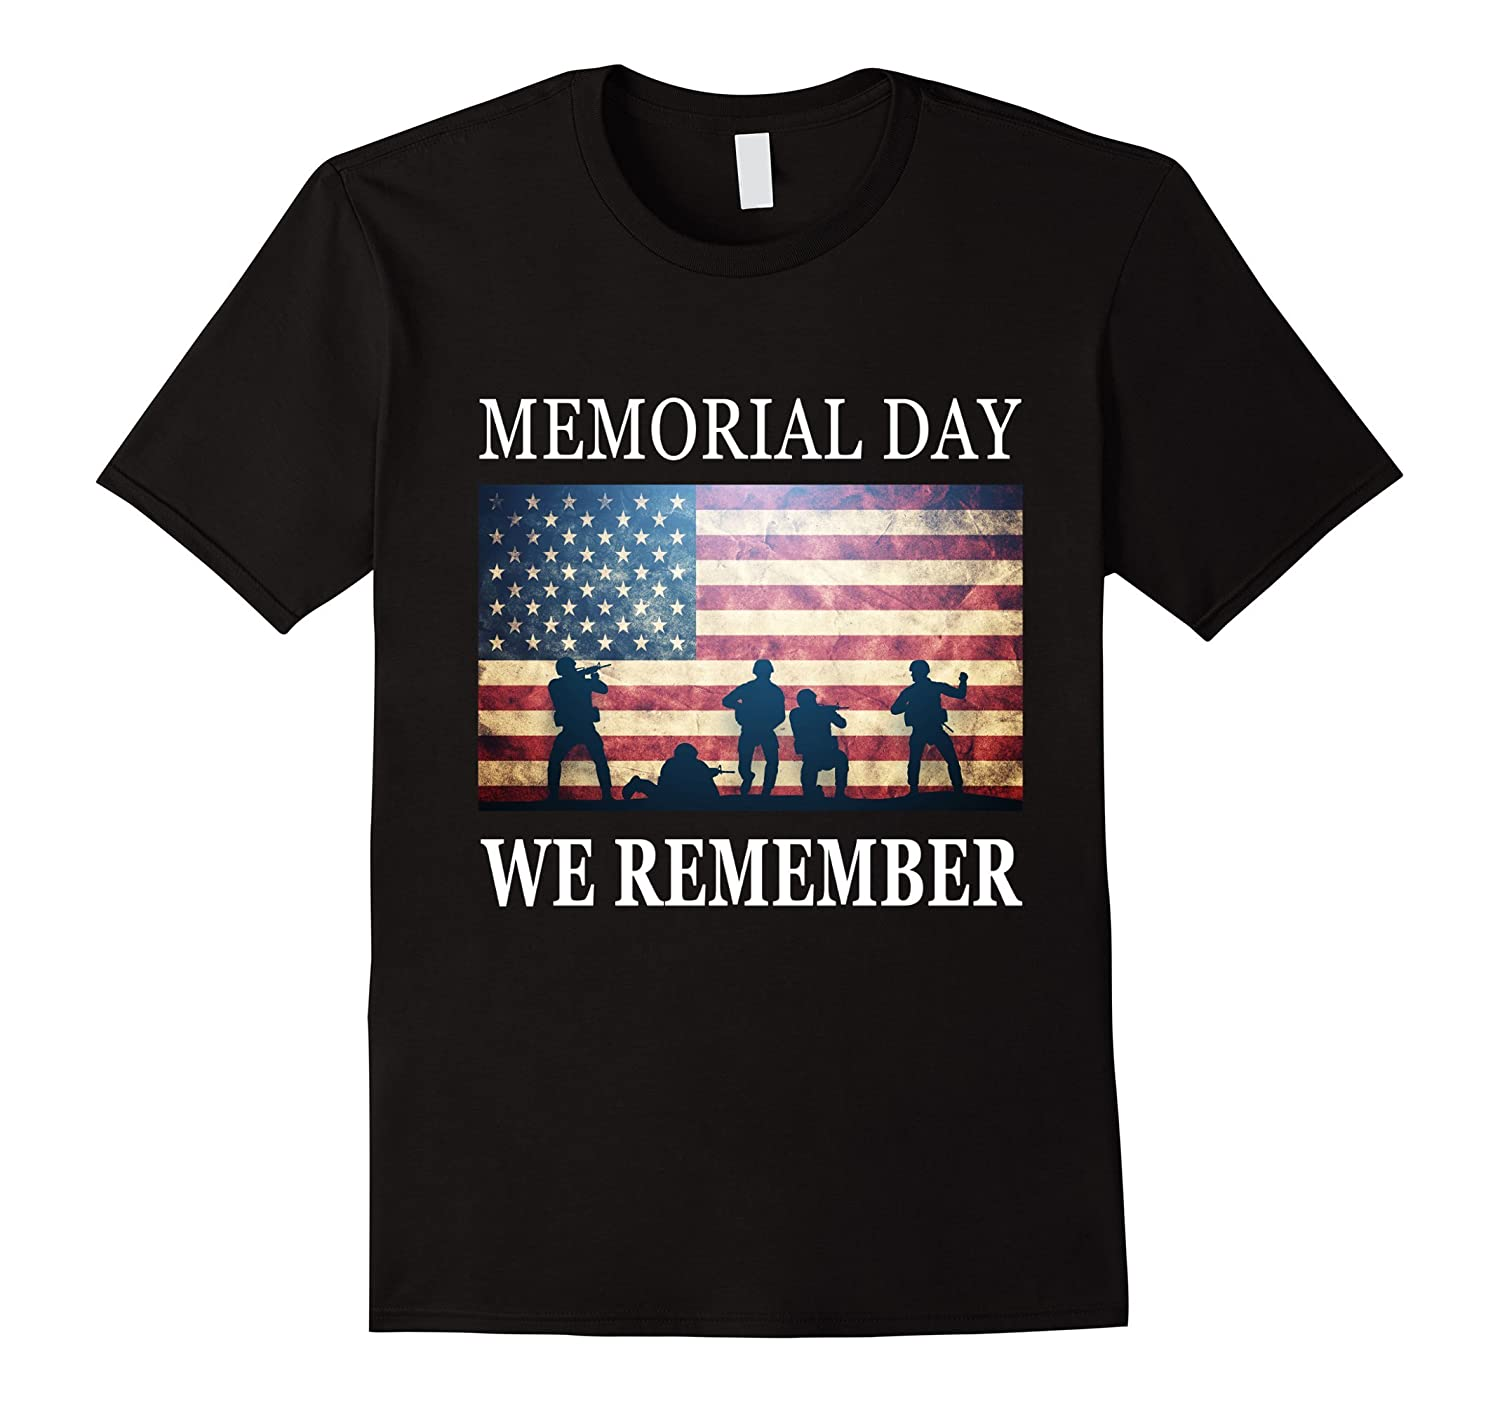 We Remember - Soldiers Military Memorial Day T-Shirt-Art